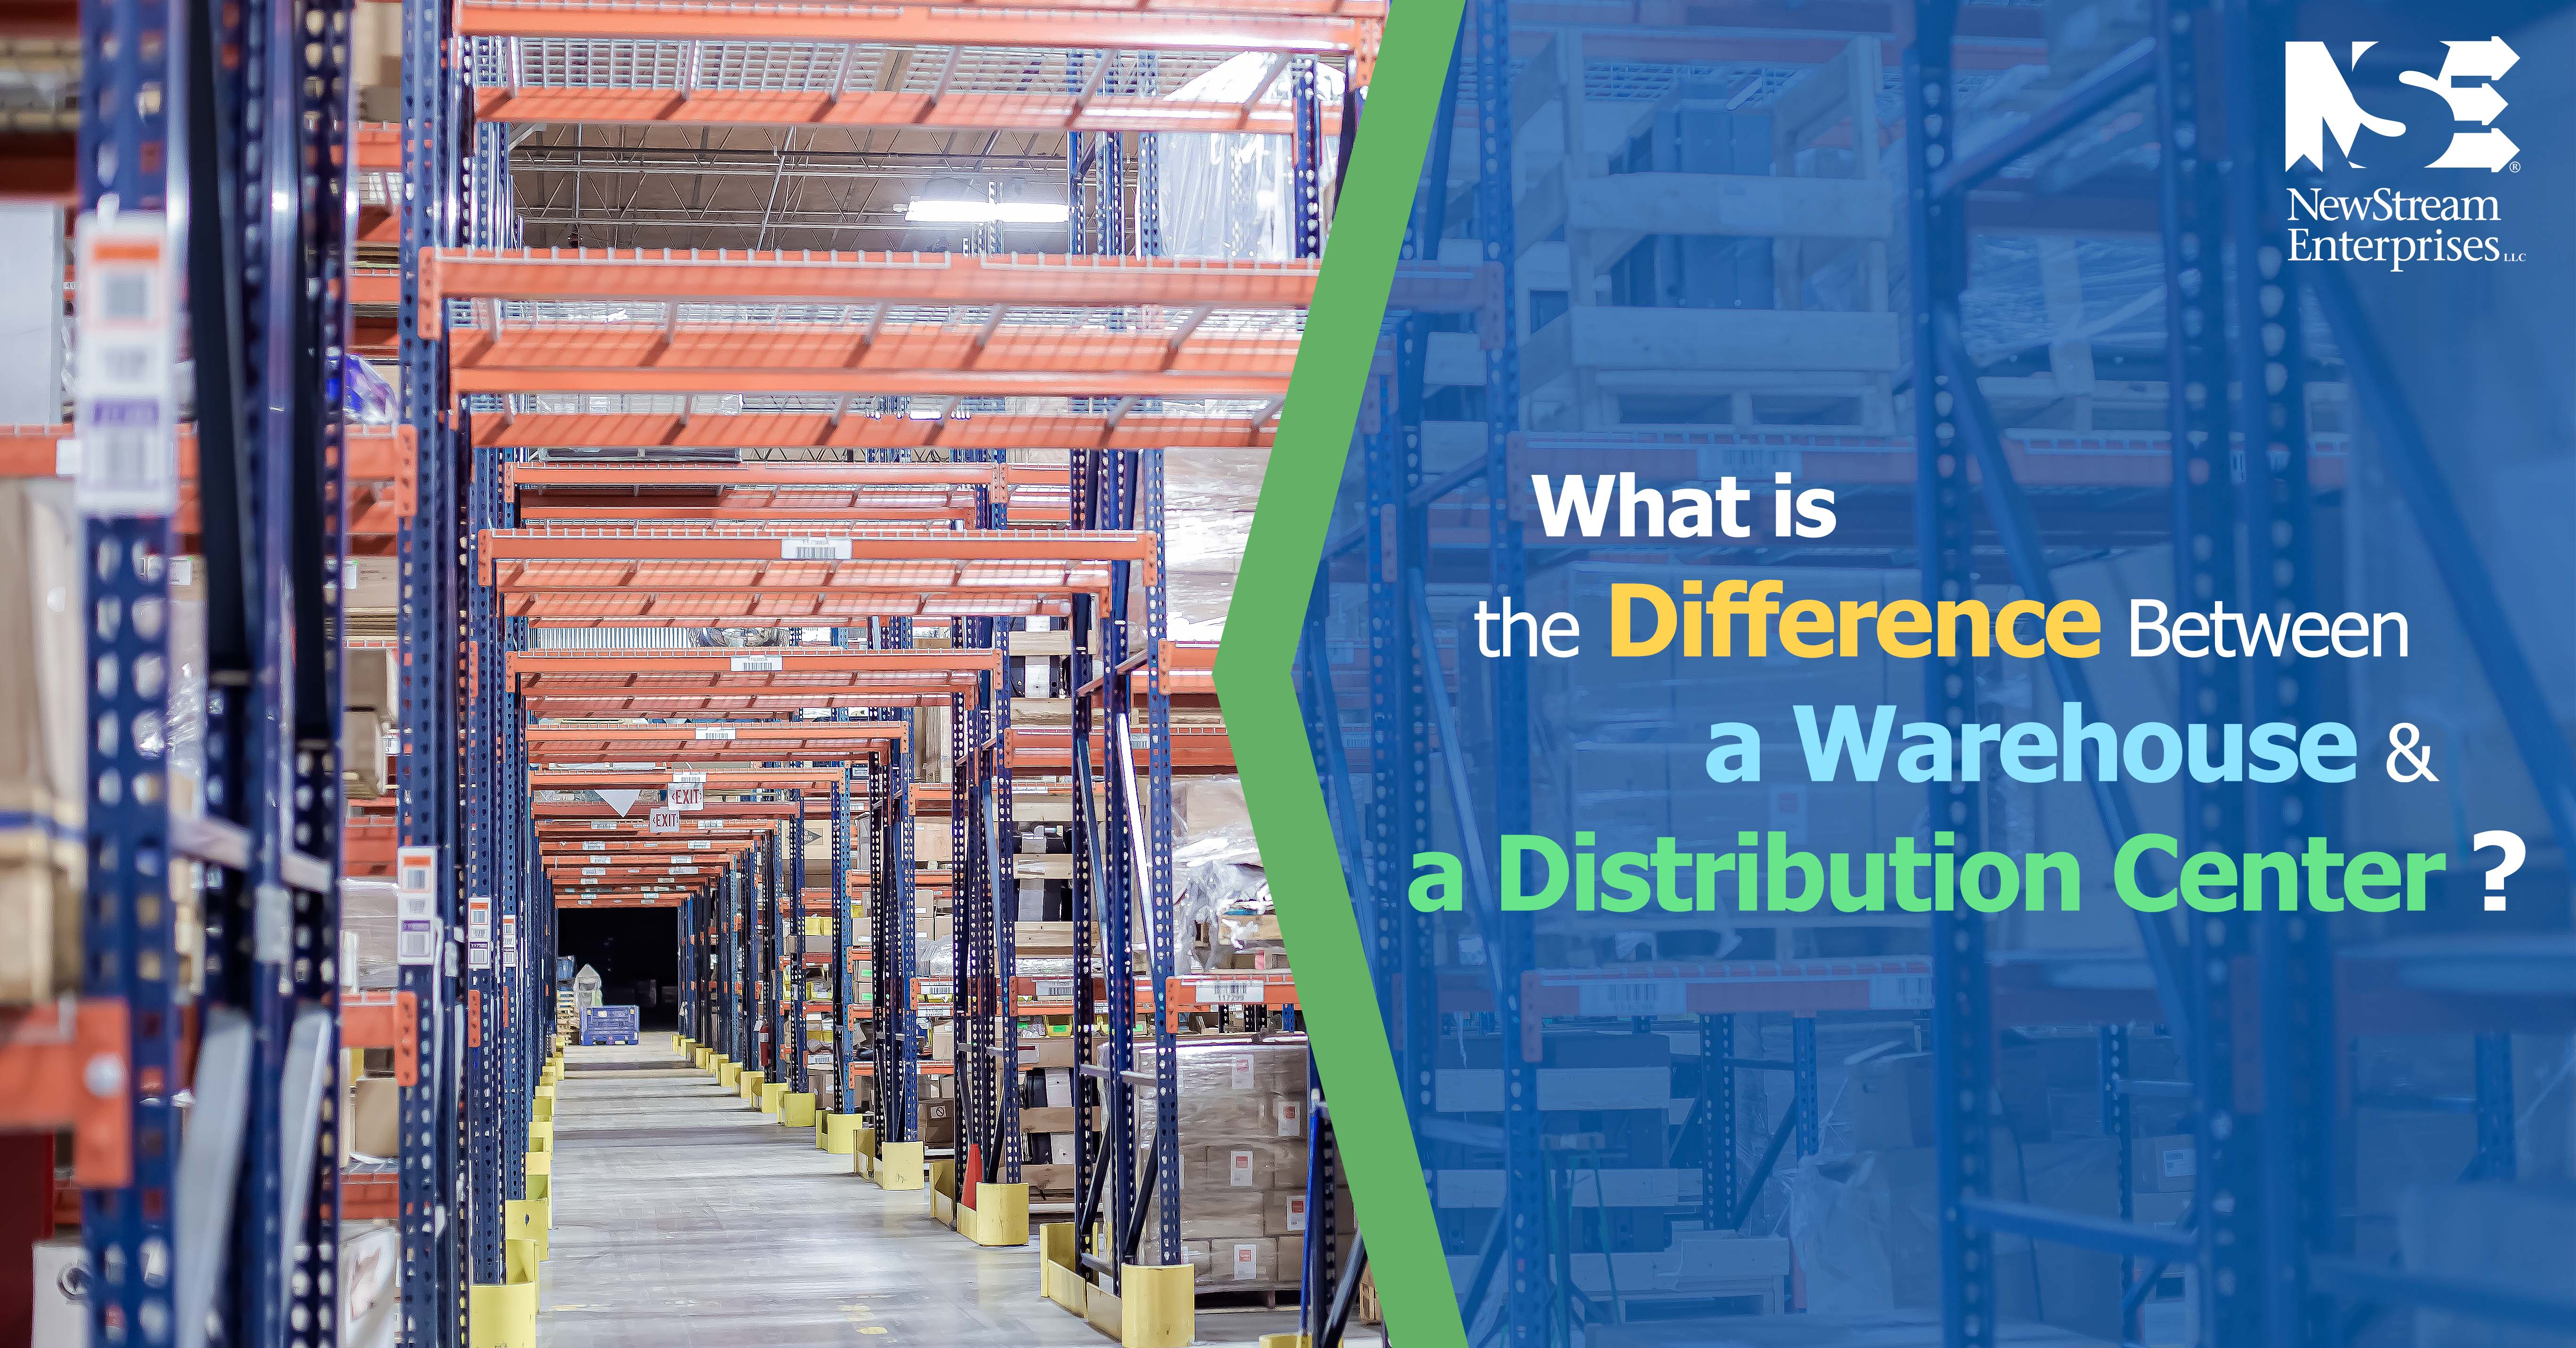 What is the Difference between a Warehouse and a Distribution Center?